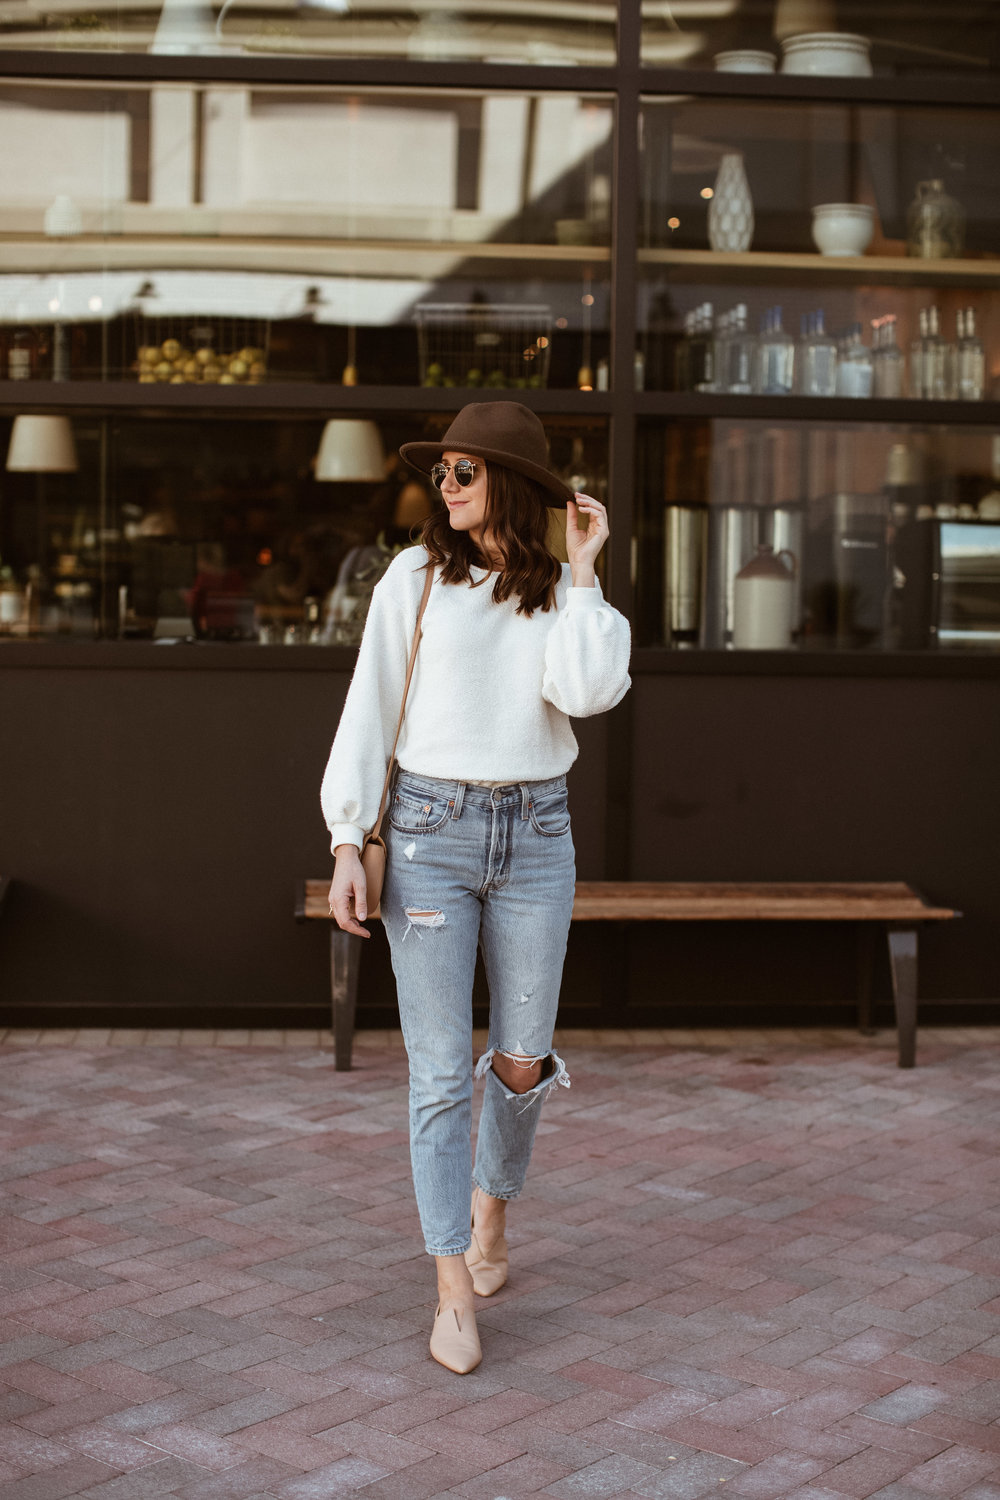 Shop the Look Below.  Anthropologie Sweatshirt  |  Levi's Jeans  |  Vince Flats  |  Treasure & Bond Hat  |  See By Chloe Bag  |  Ray-Ban Sunglasses